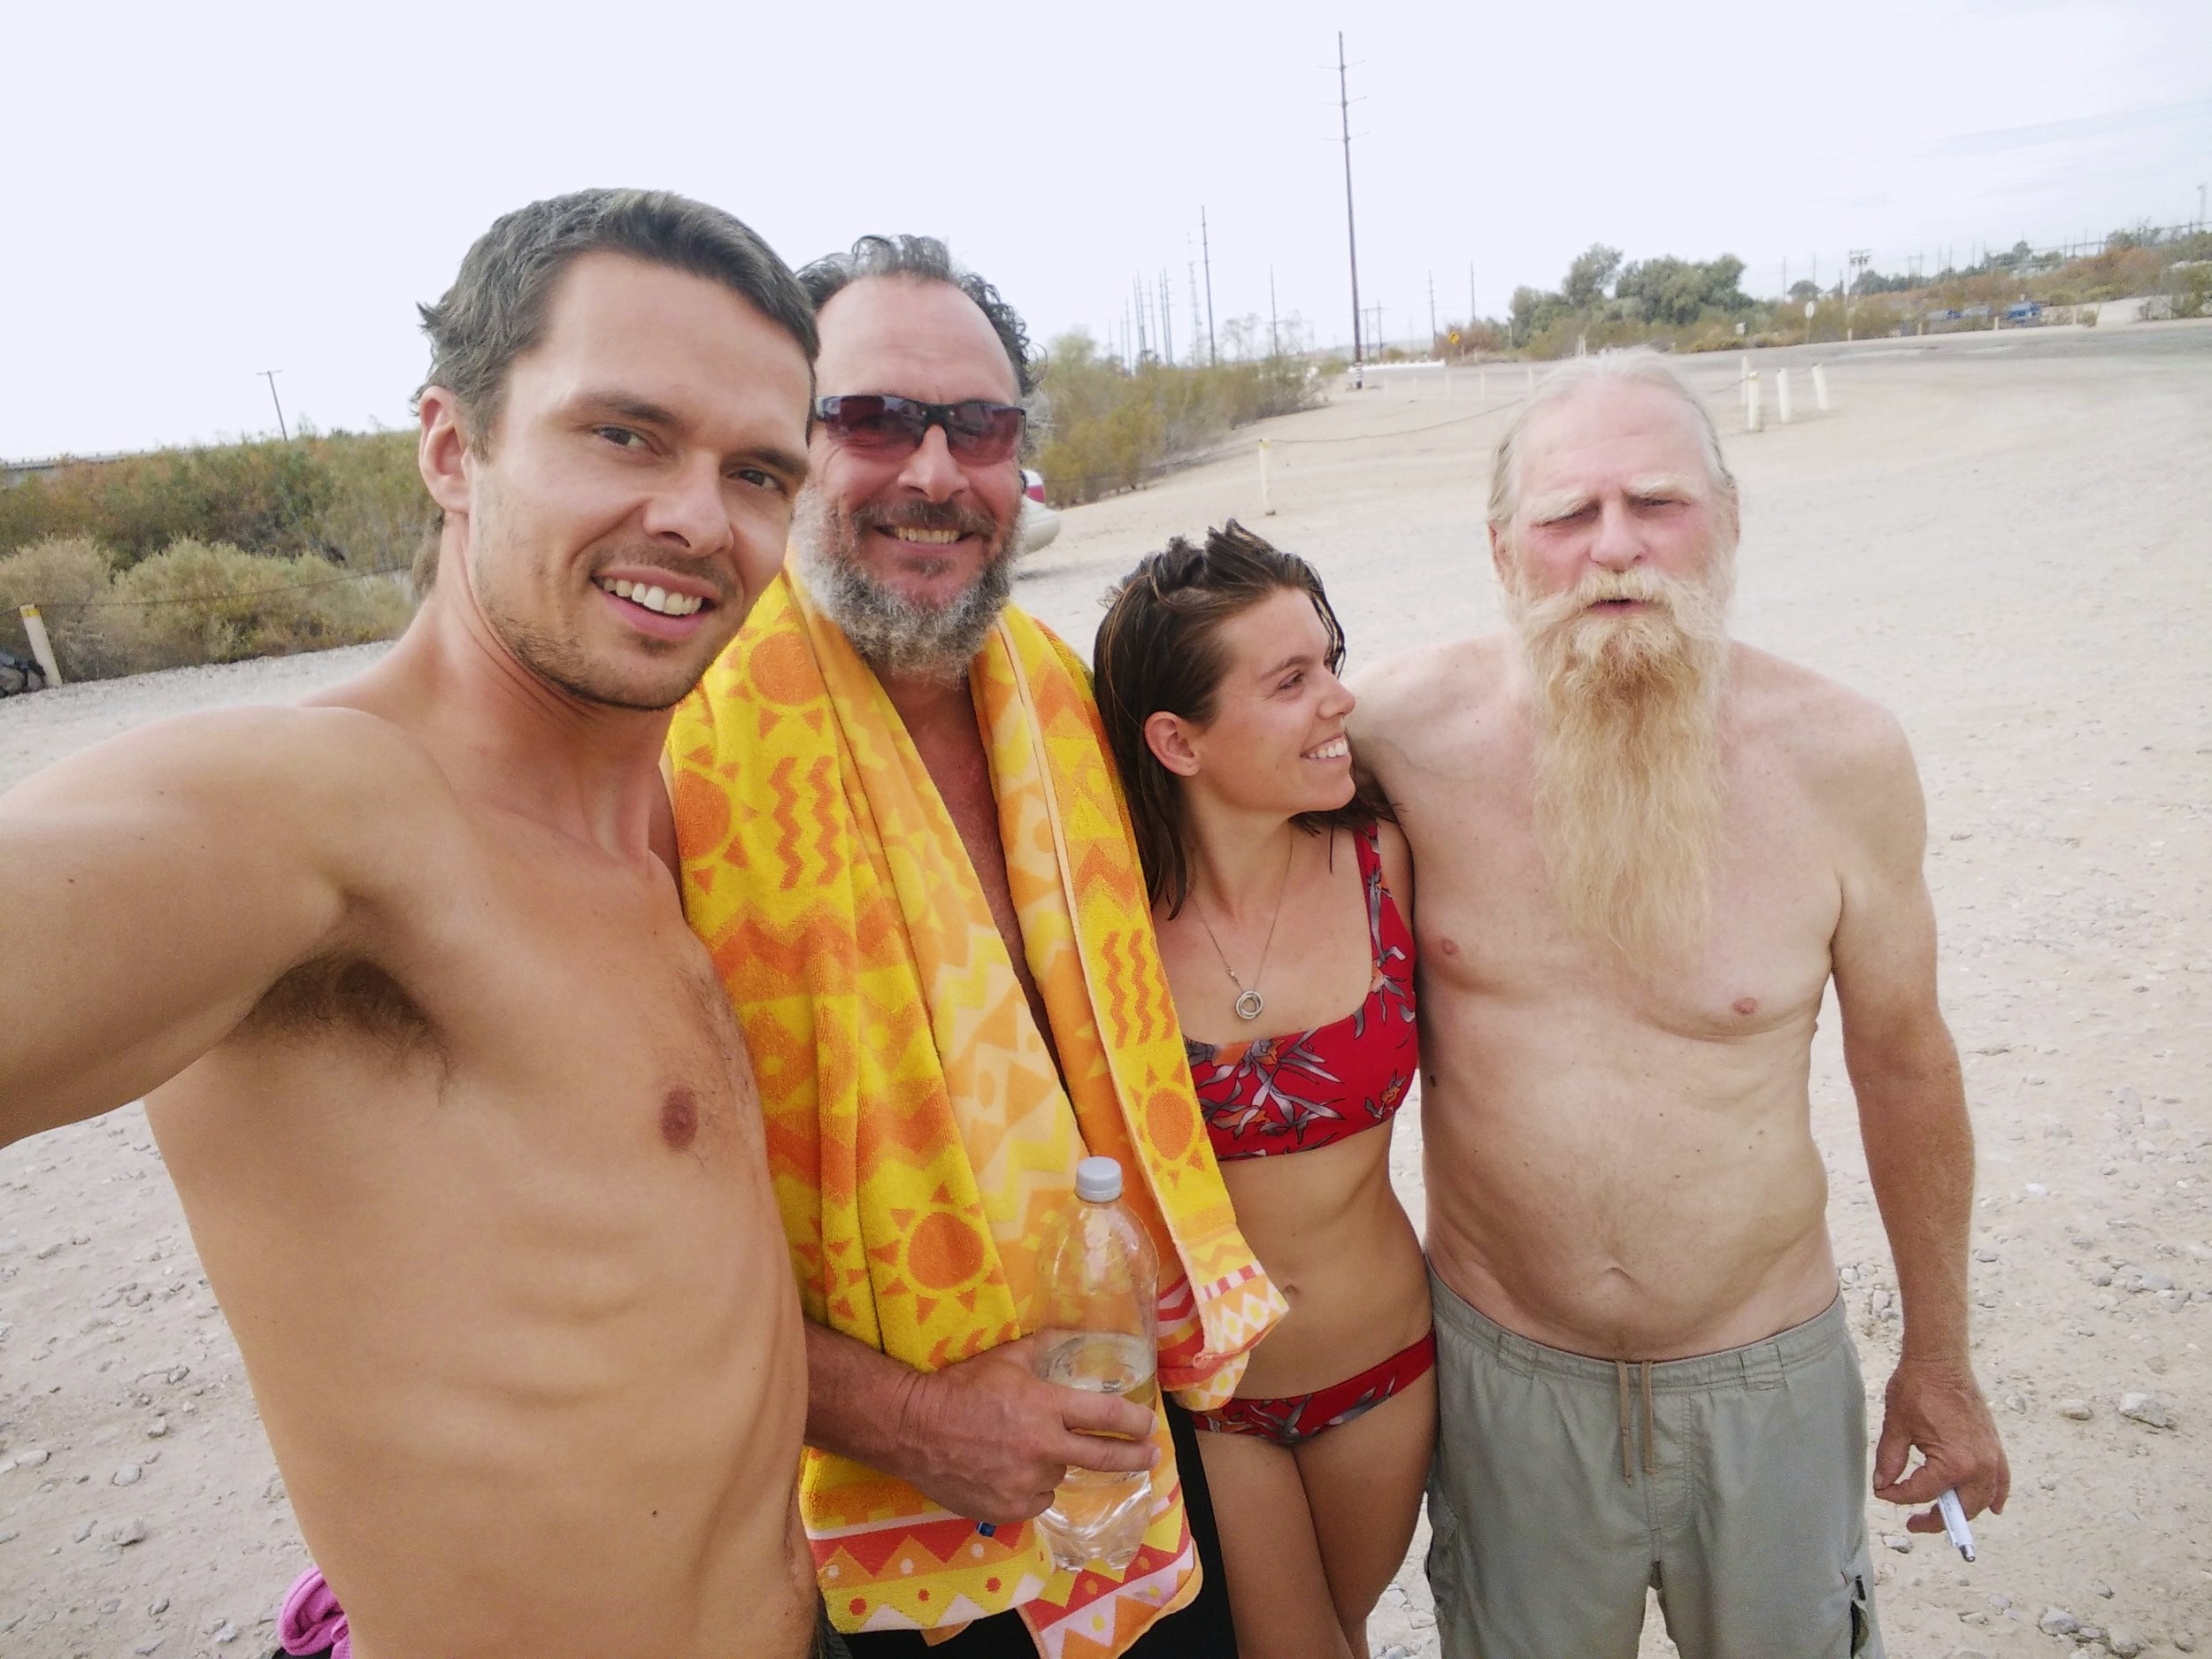 In a very short amount of time, strangers become friends at places like Holtville Hot Springs